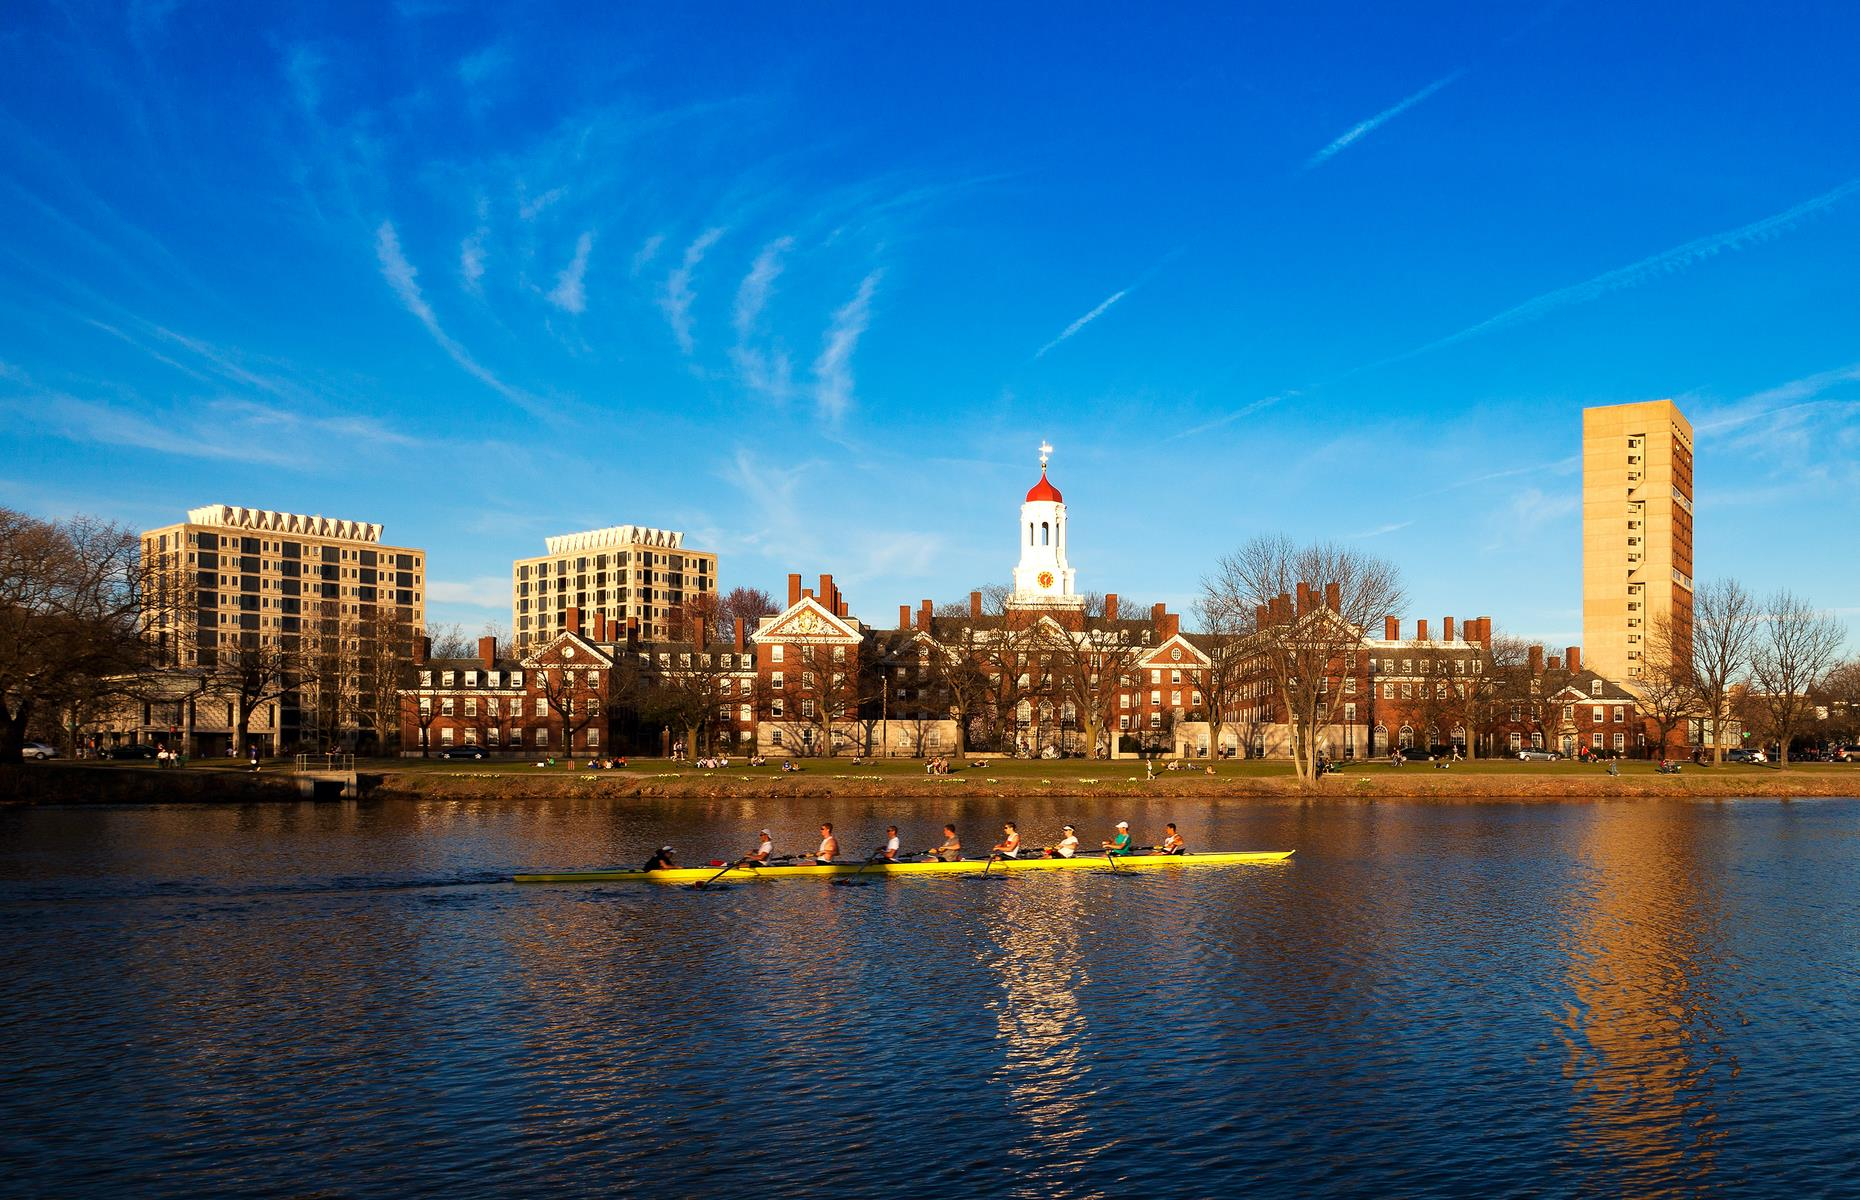 Slide 12 of 41: Just over the Charles River from Boston is Cambridge, home of Harvard University. The nation's first college, it was established in 1636 by Cambridge University alumnus John Harvard. Its student-led tours are a great way to hear the incredible history of these hallowed halls – at the moment only virtual tours are on offer. Harvard's prestigious alumni include numerous presidents: John Adams (the country's second president), John F Kennedy and Barack Obama to name just a few.